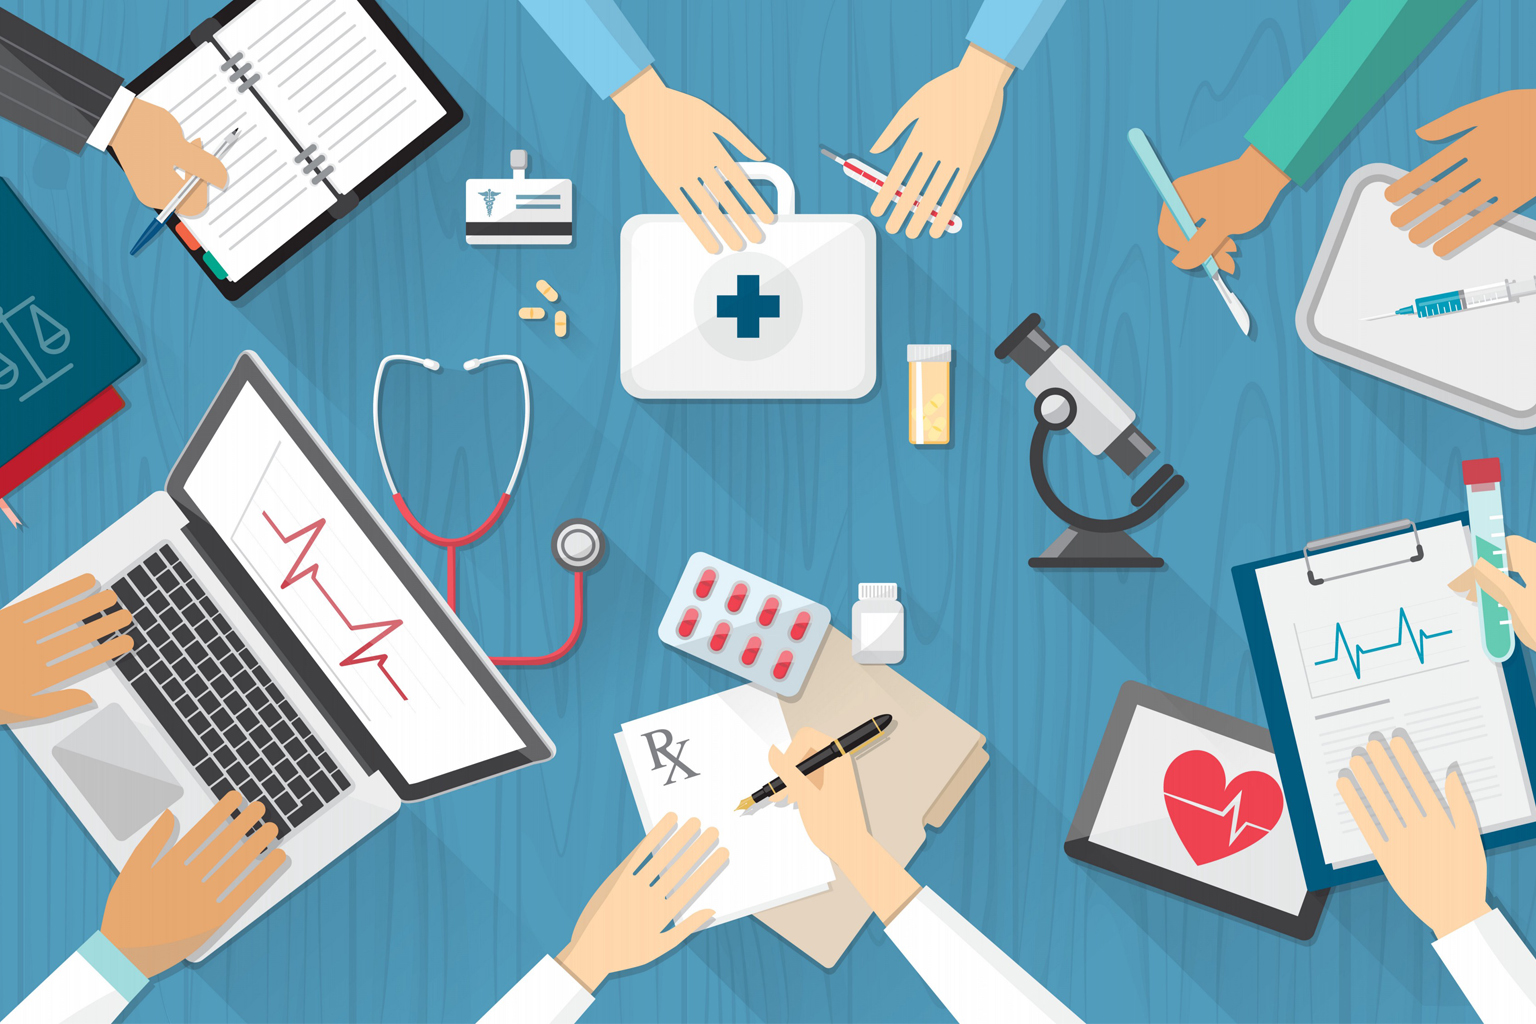 Illustration showing multiple healthcare workers hands working on various tools like laptop, clipboard, etc